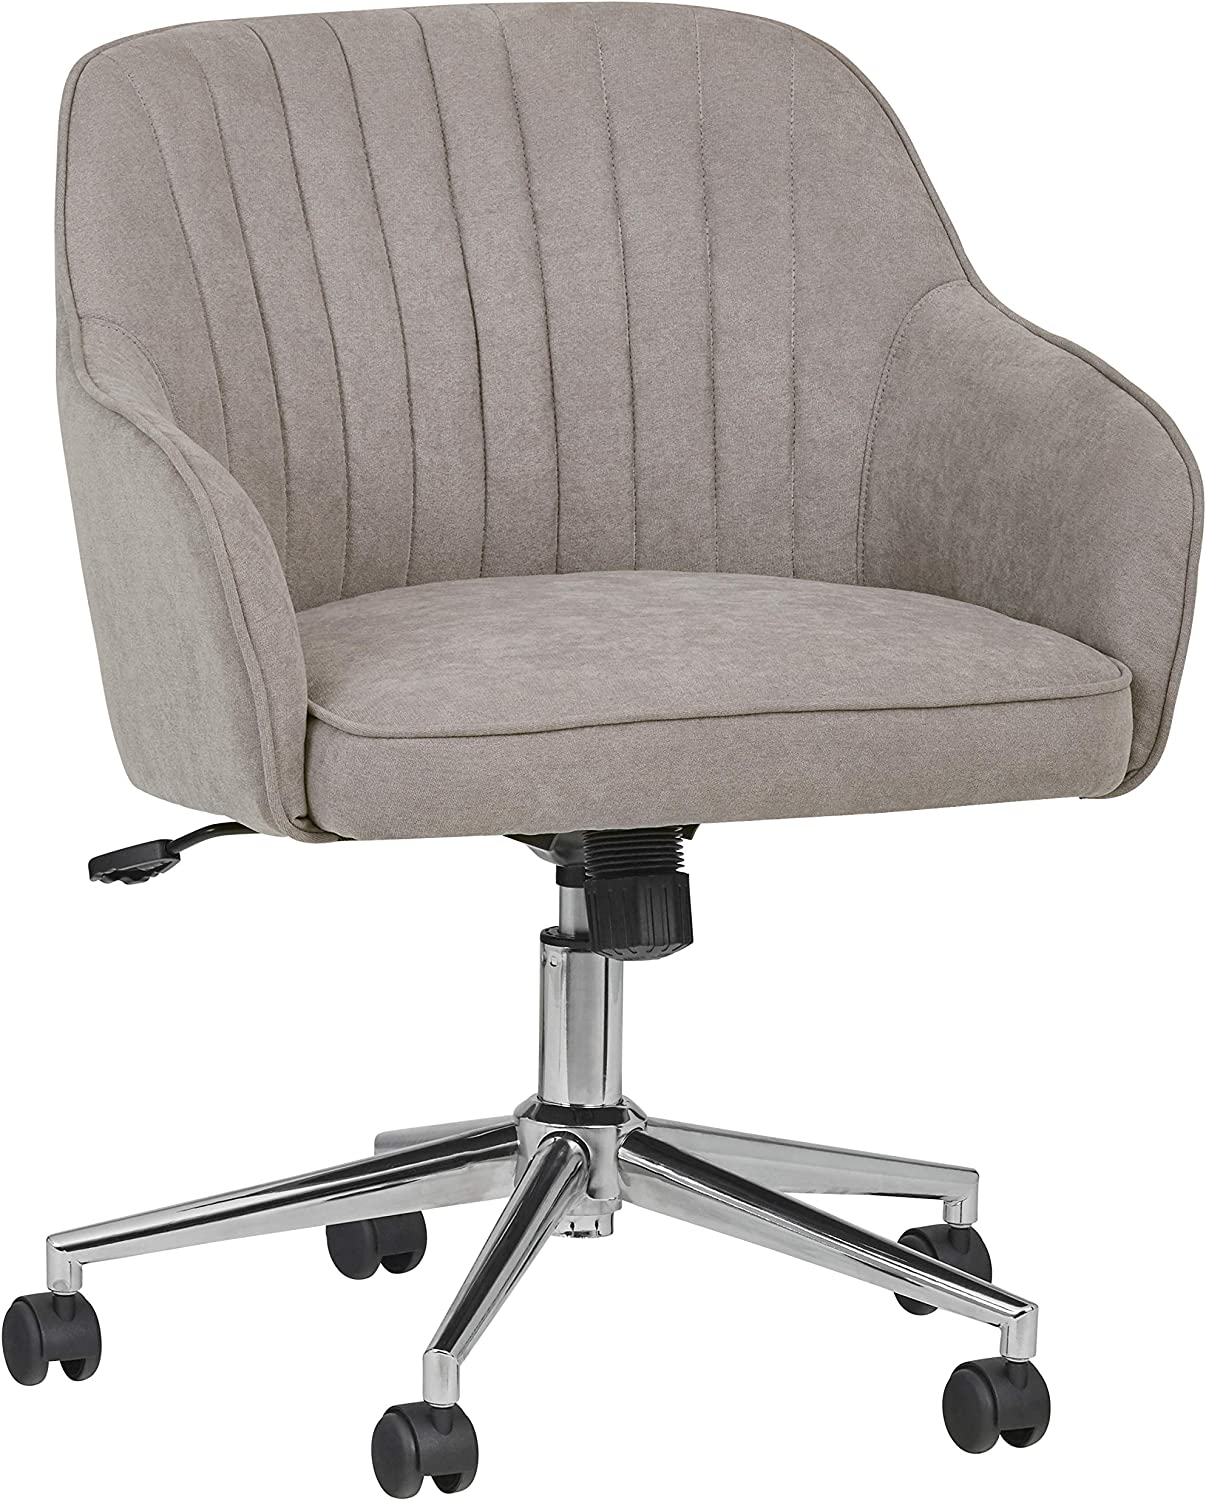 Office Products Office Furniture & Accessories Basics Twill Fabric ...